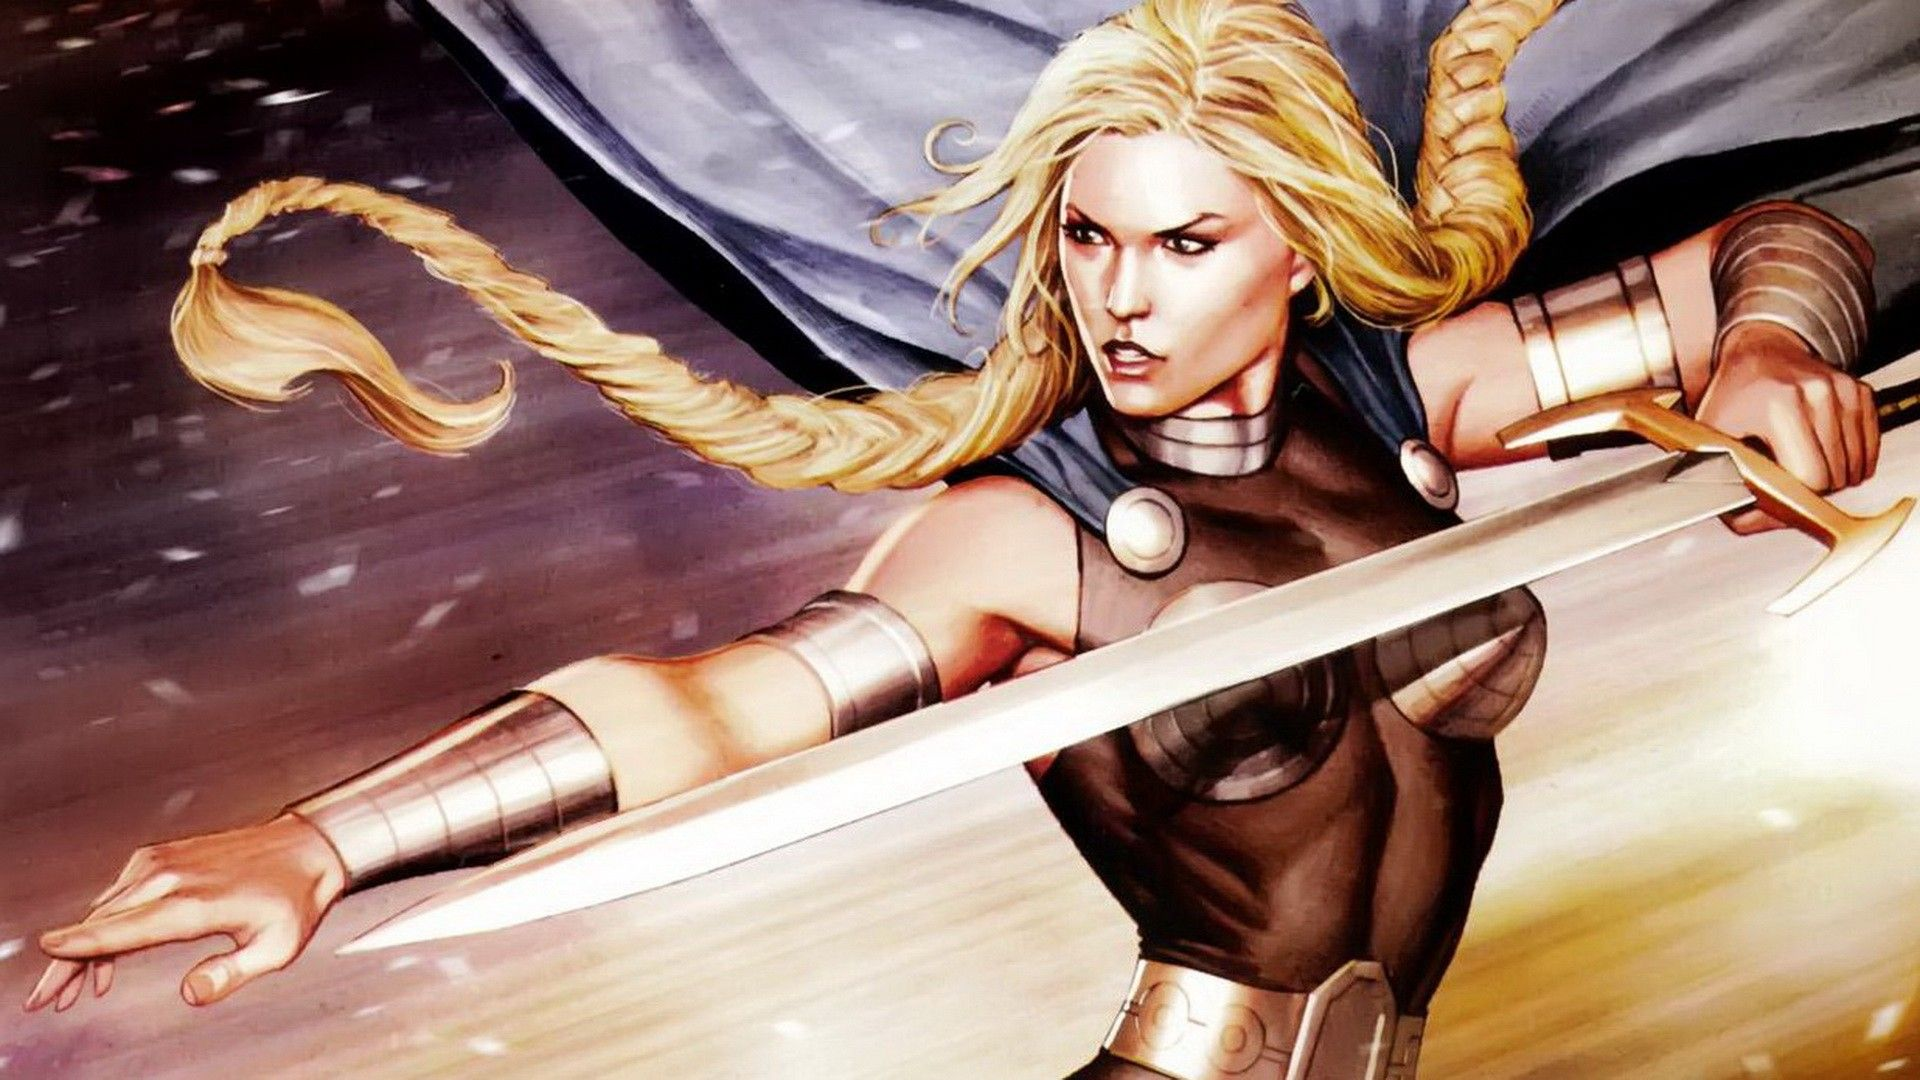 Valkyrie Marvel Wallpaper Comic Valkyrie Valkyrie Marvel Comics Female Marvel Superheroes